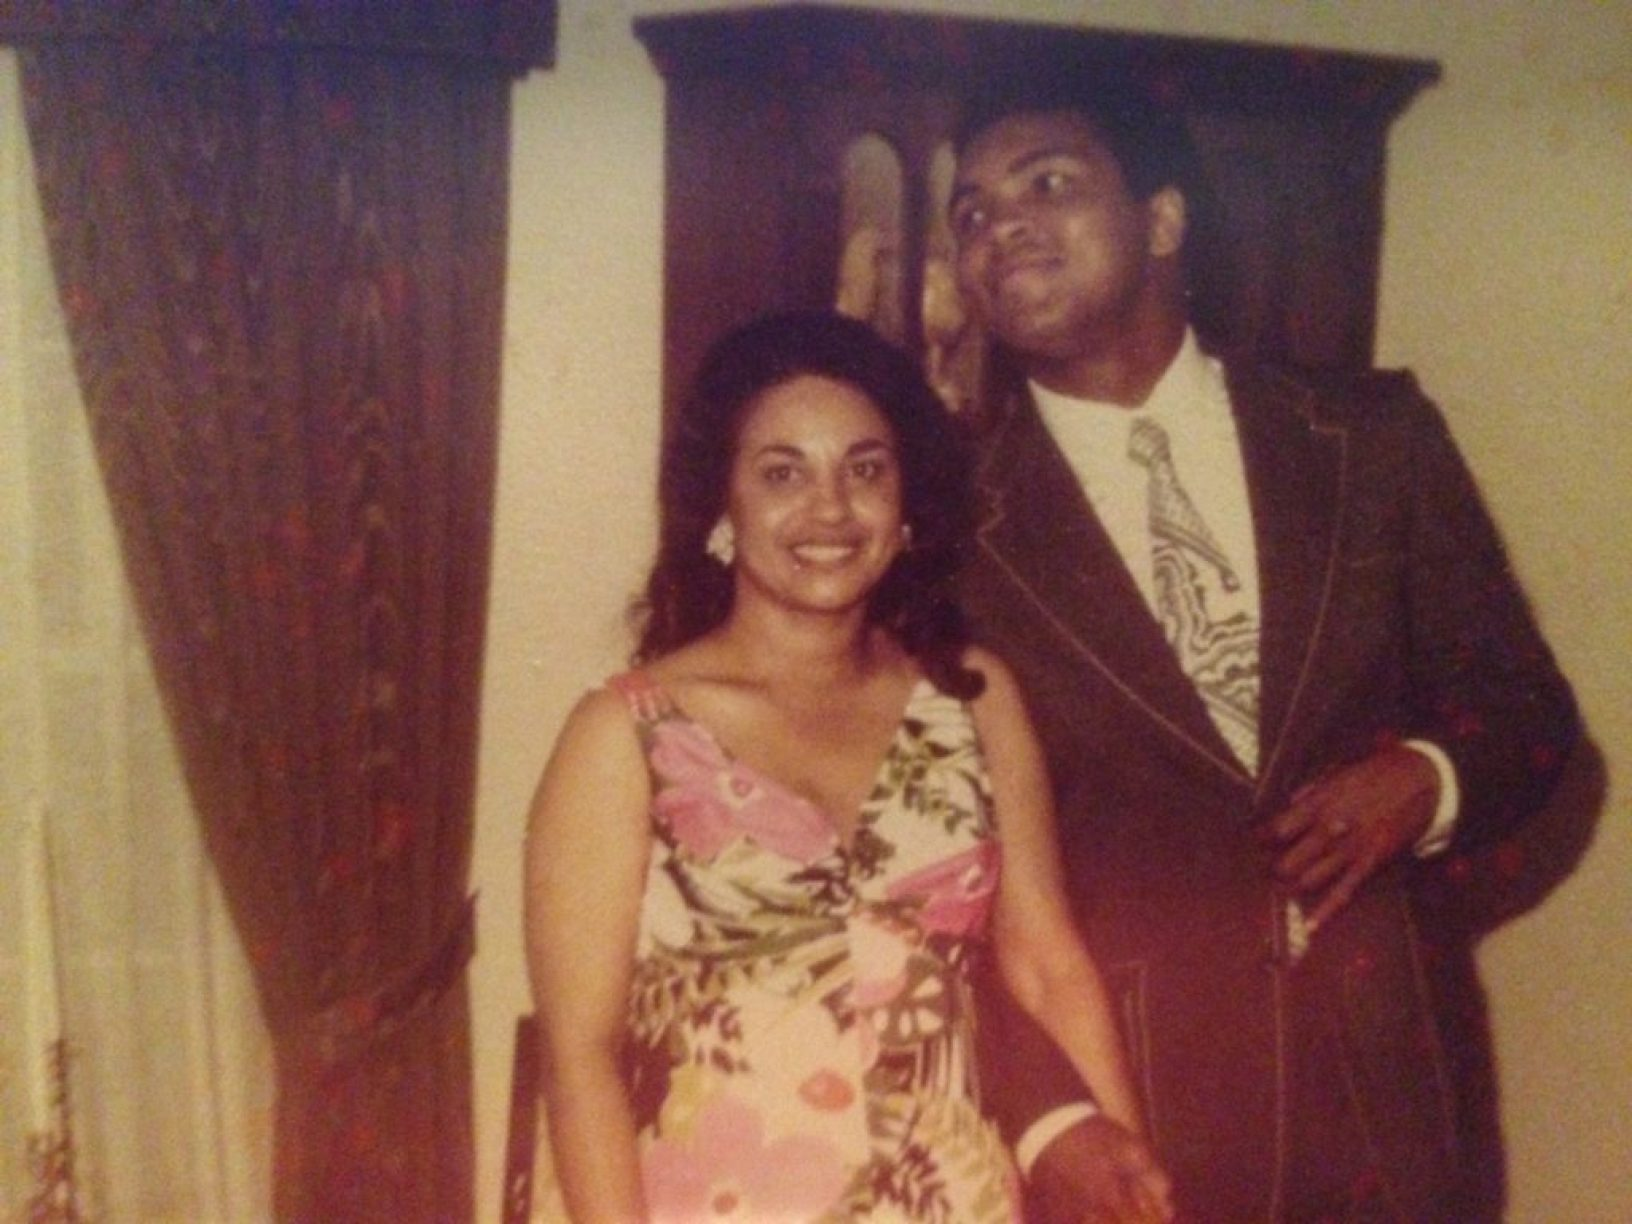 Muhammad Ali, with Betty Casem, peaks over to see himself in the mirror.